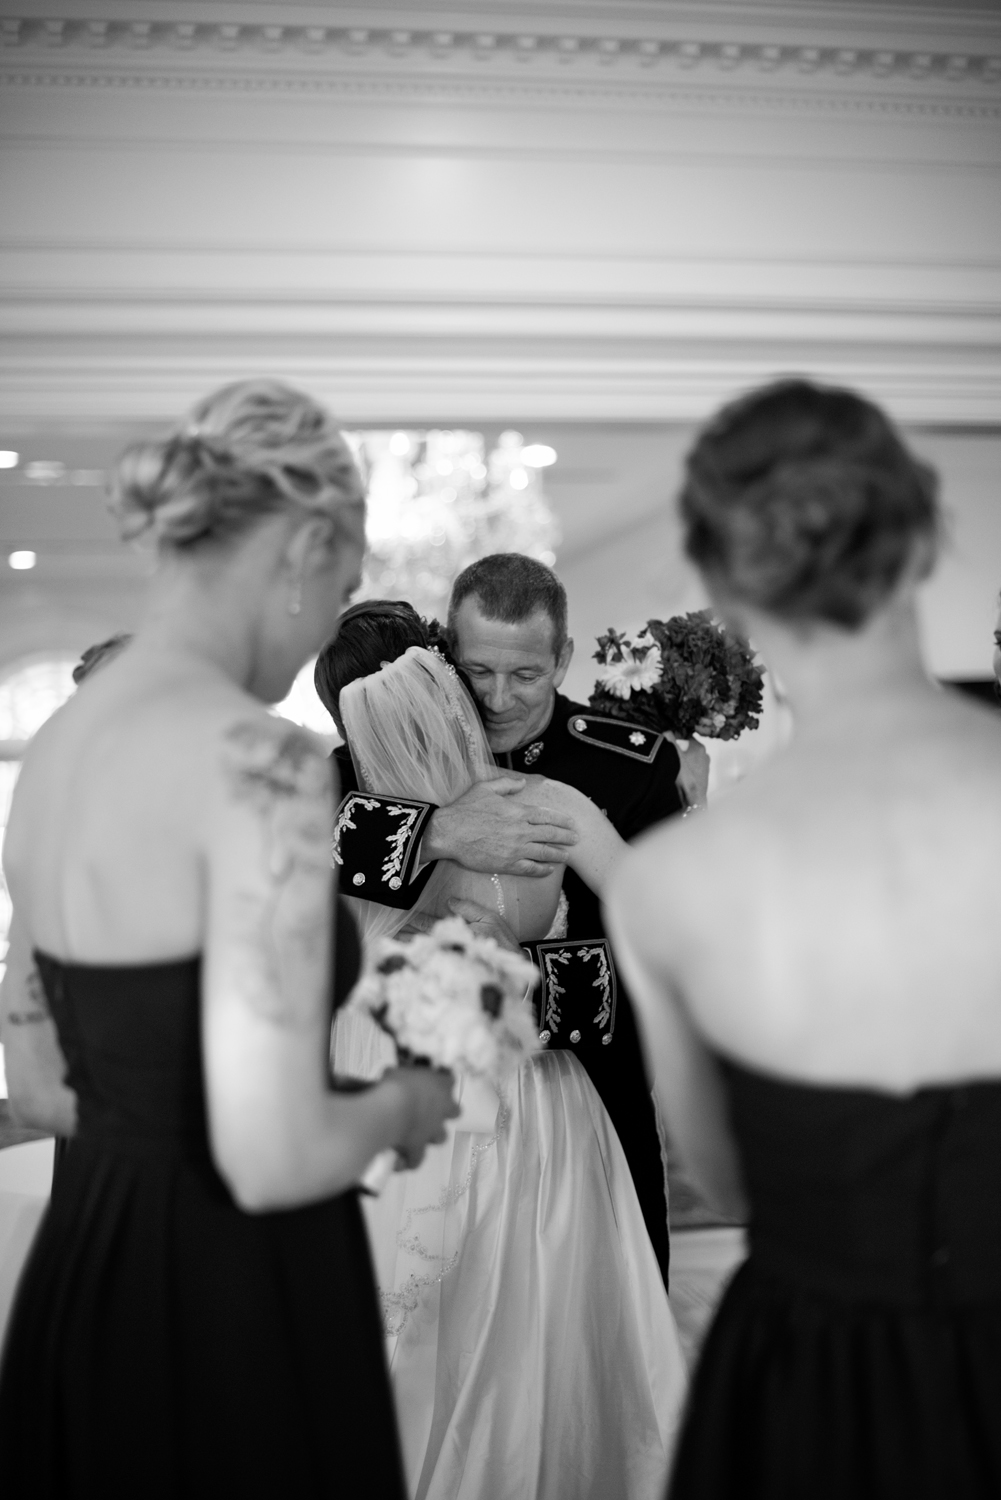 Bride and her father share a special moment together, black and white |Maria Grace Photography